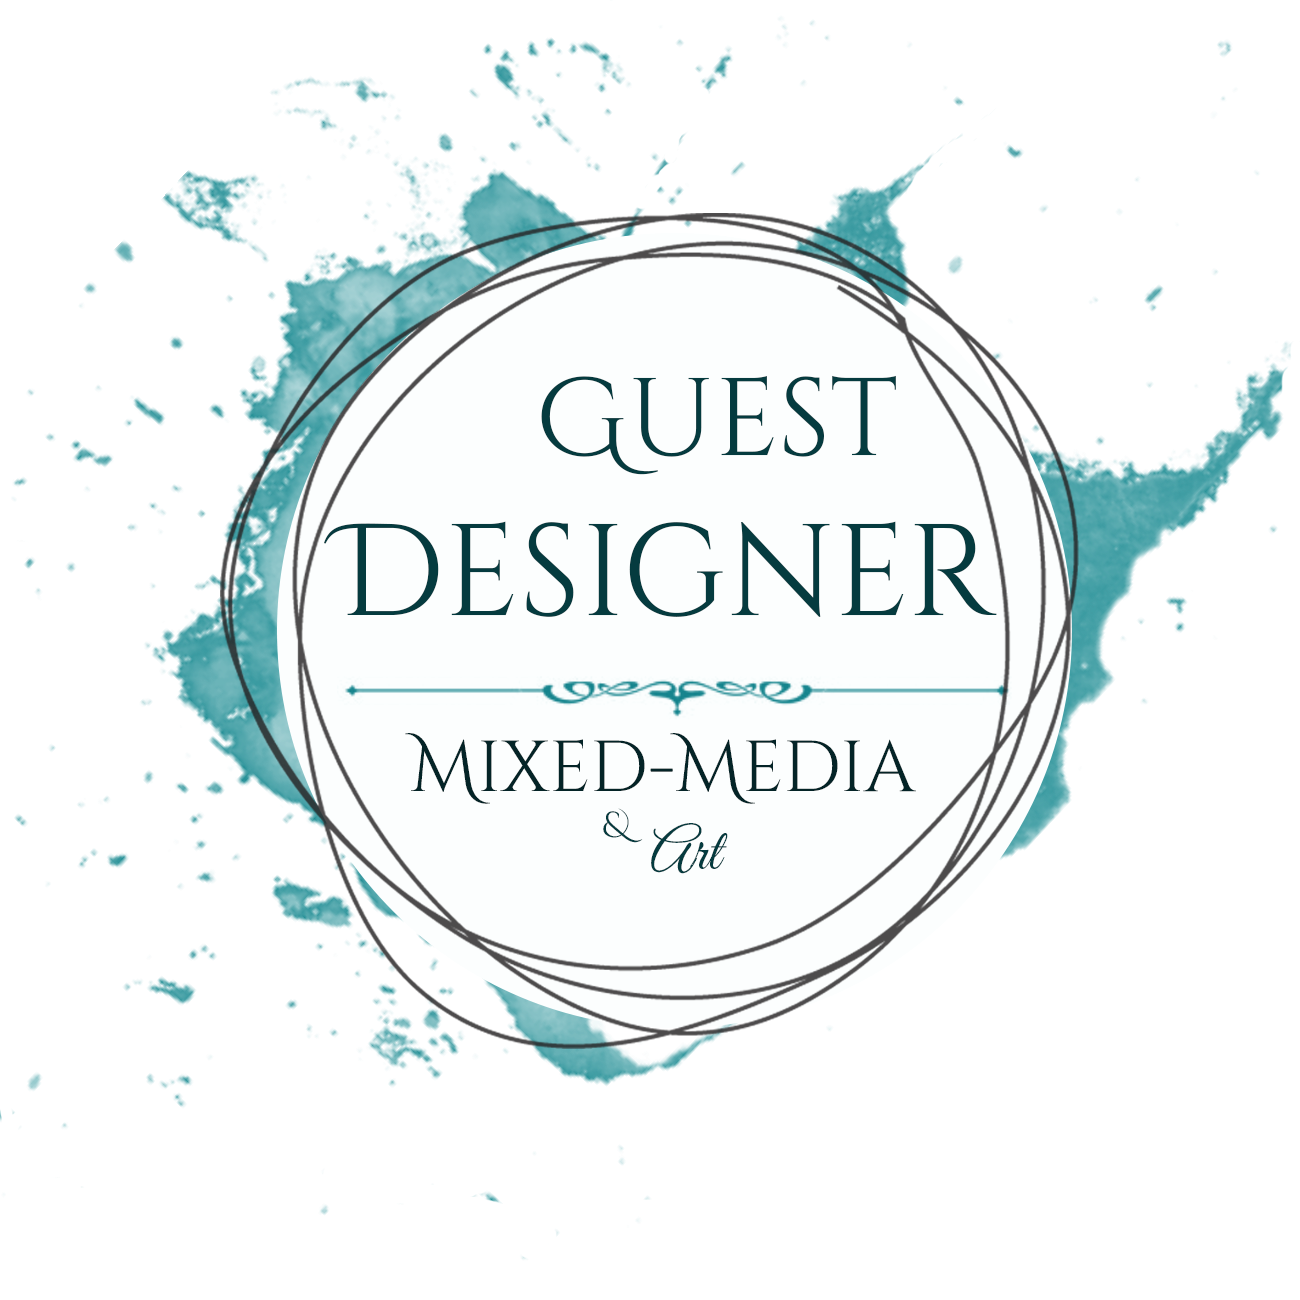 Guest Designer Mixed-Media & Arts